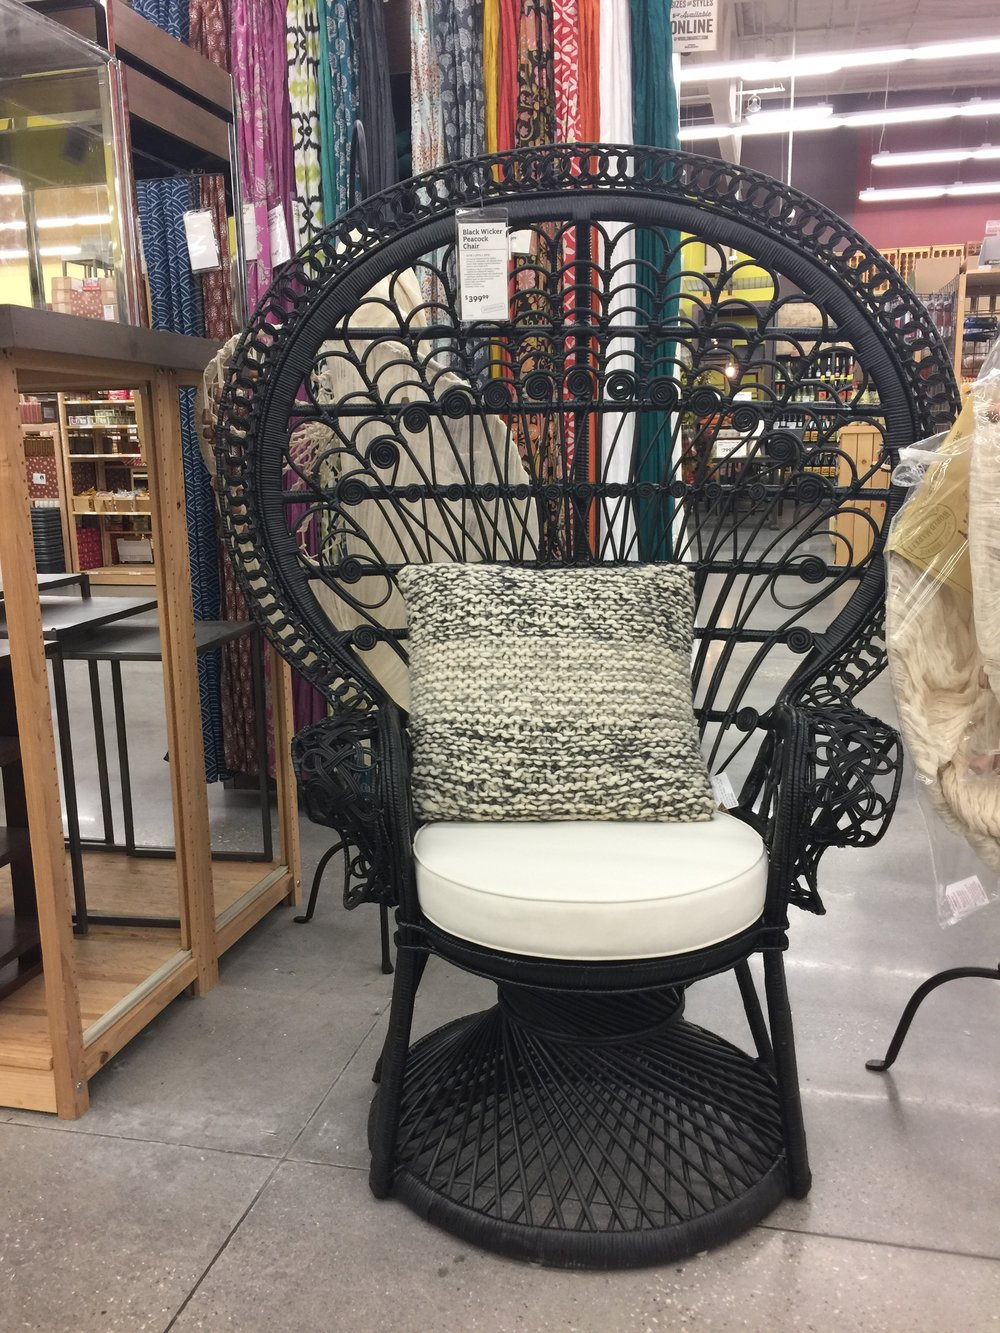 I Went To World Market Over The Weekend And Saw This Black Beauty In  Person. She Is Fabulous. I Am Seriously Contemplating Getting A Black  Peacock Chair ...